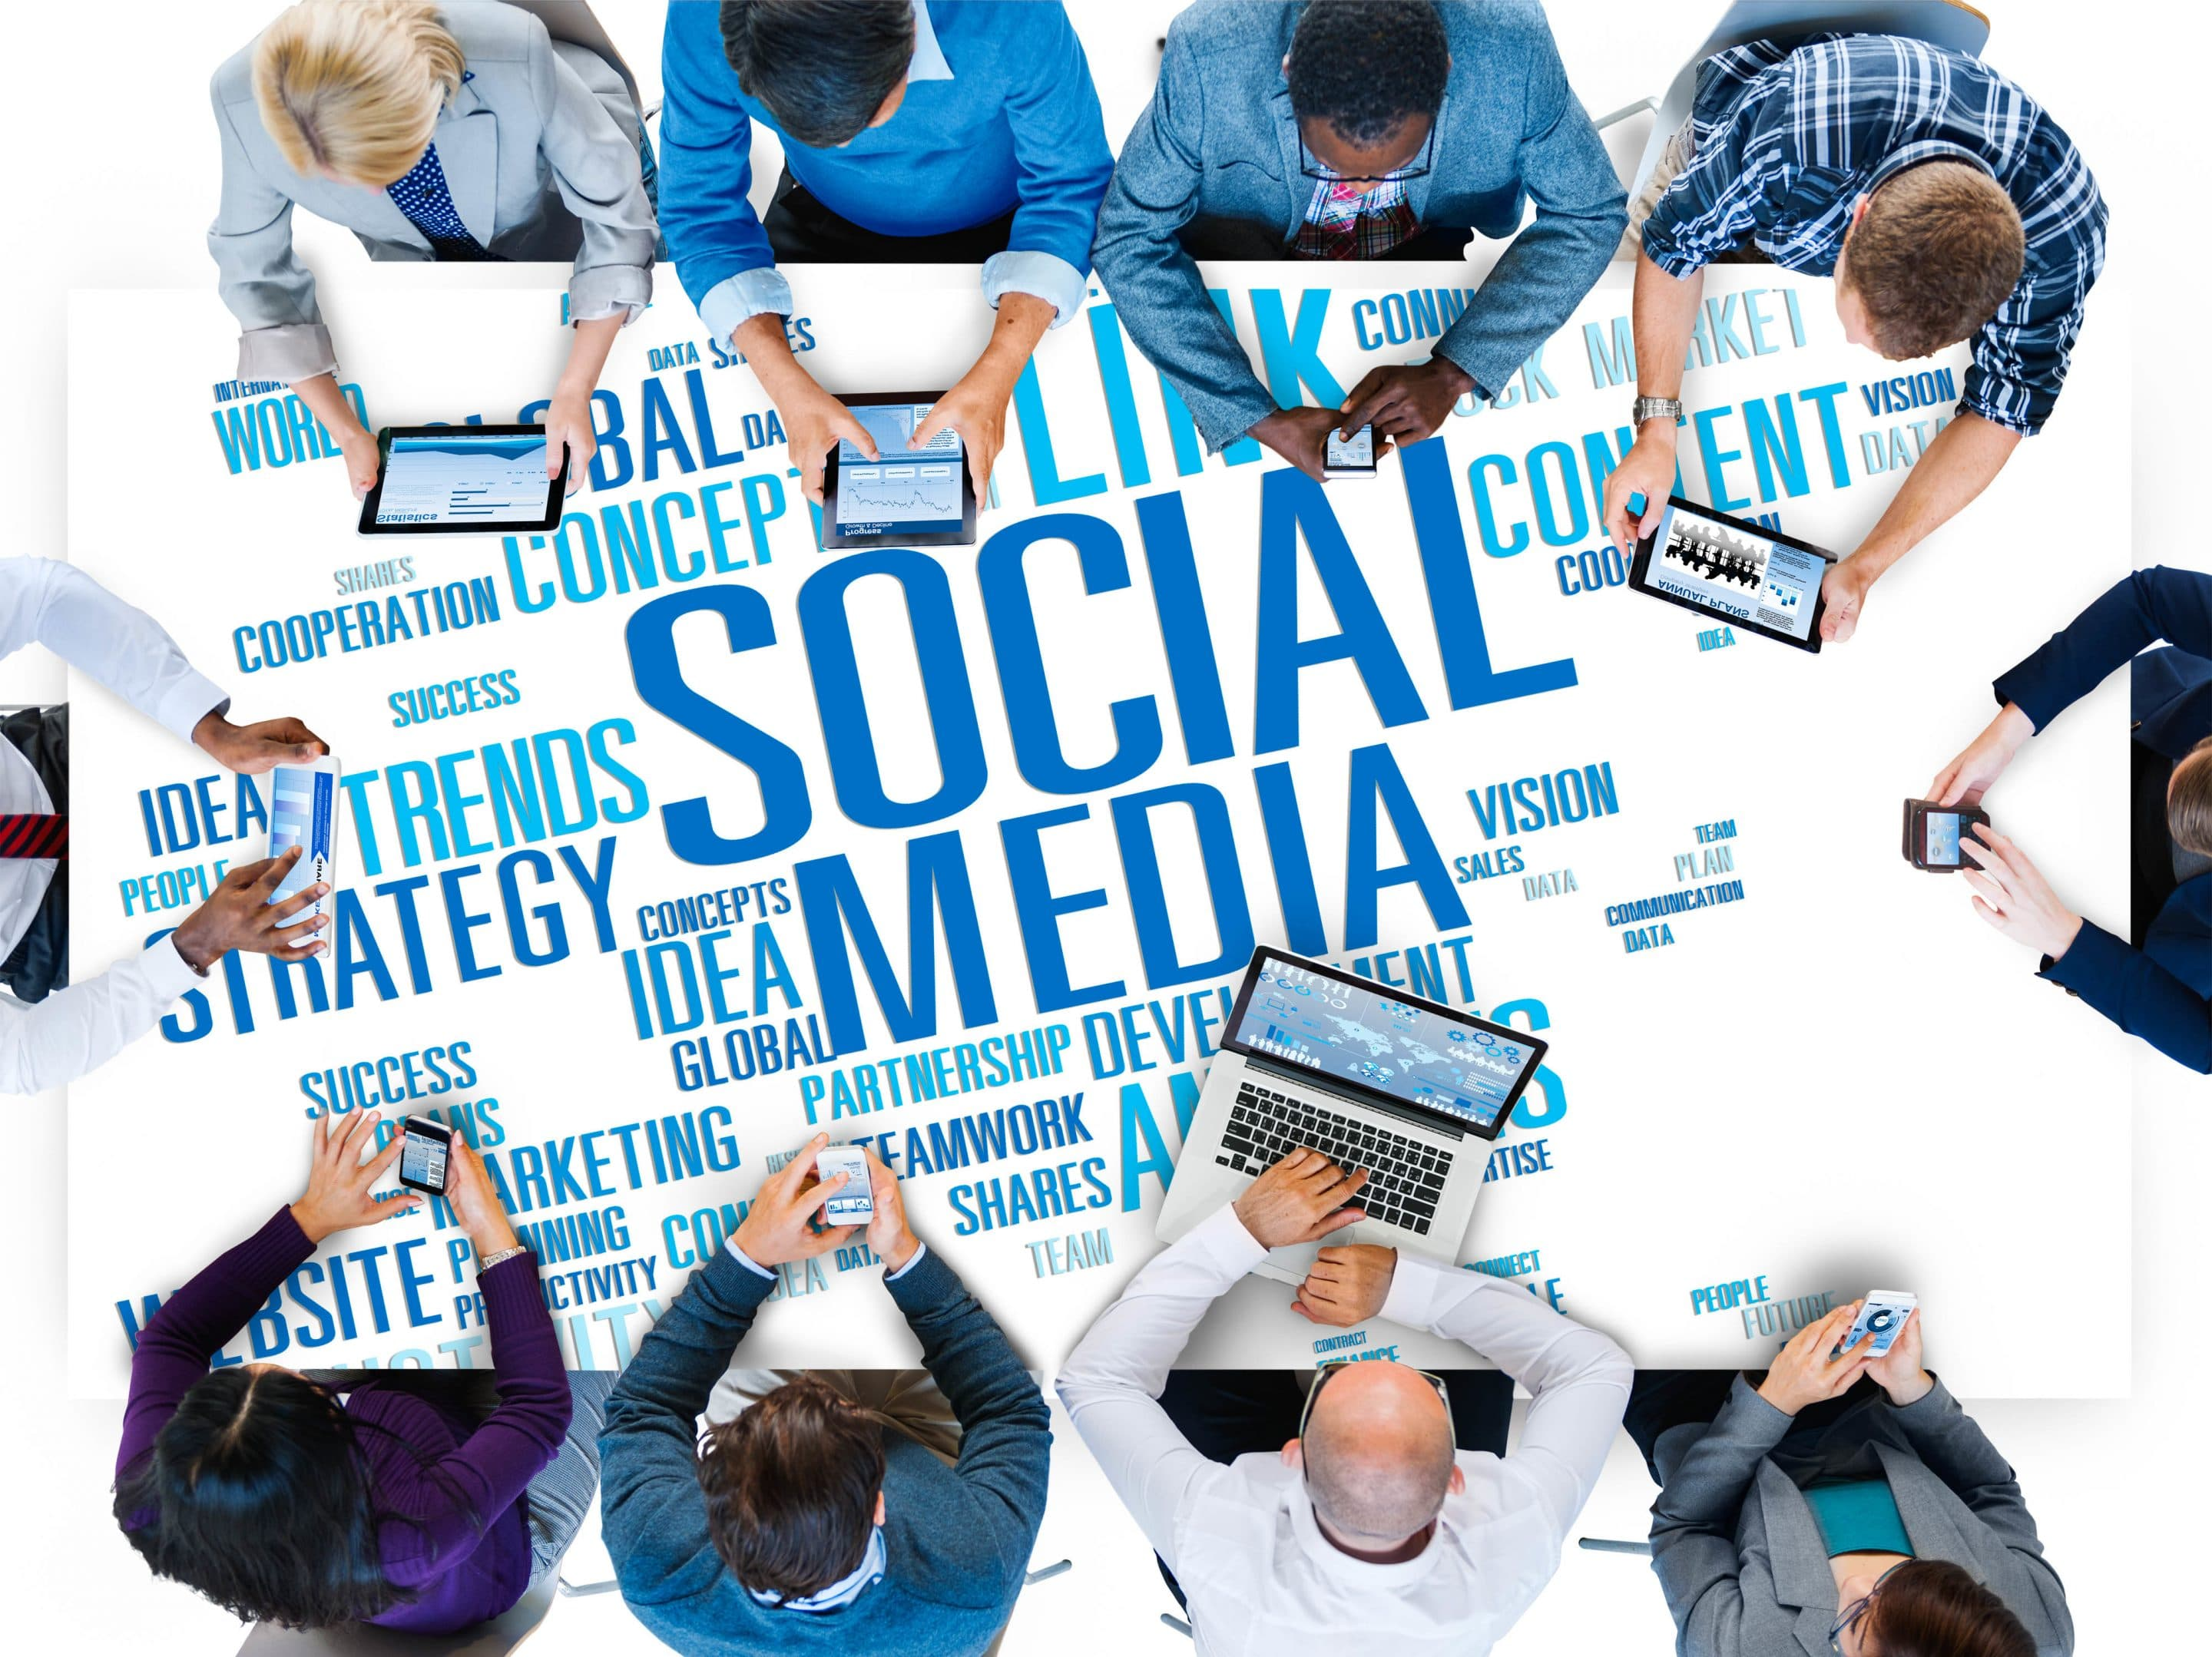 5 Useful Niche Social Networks For Professional Industries